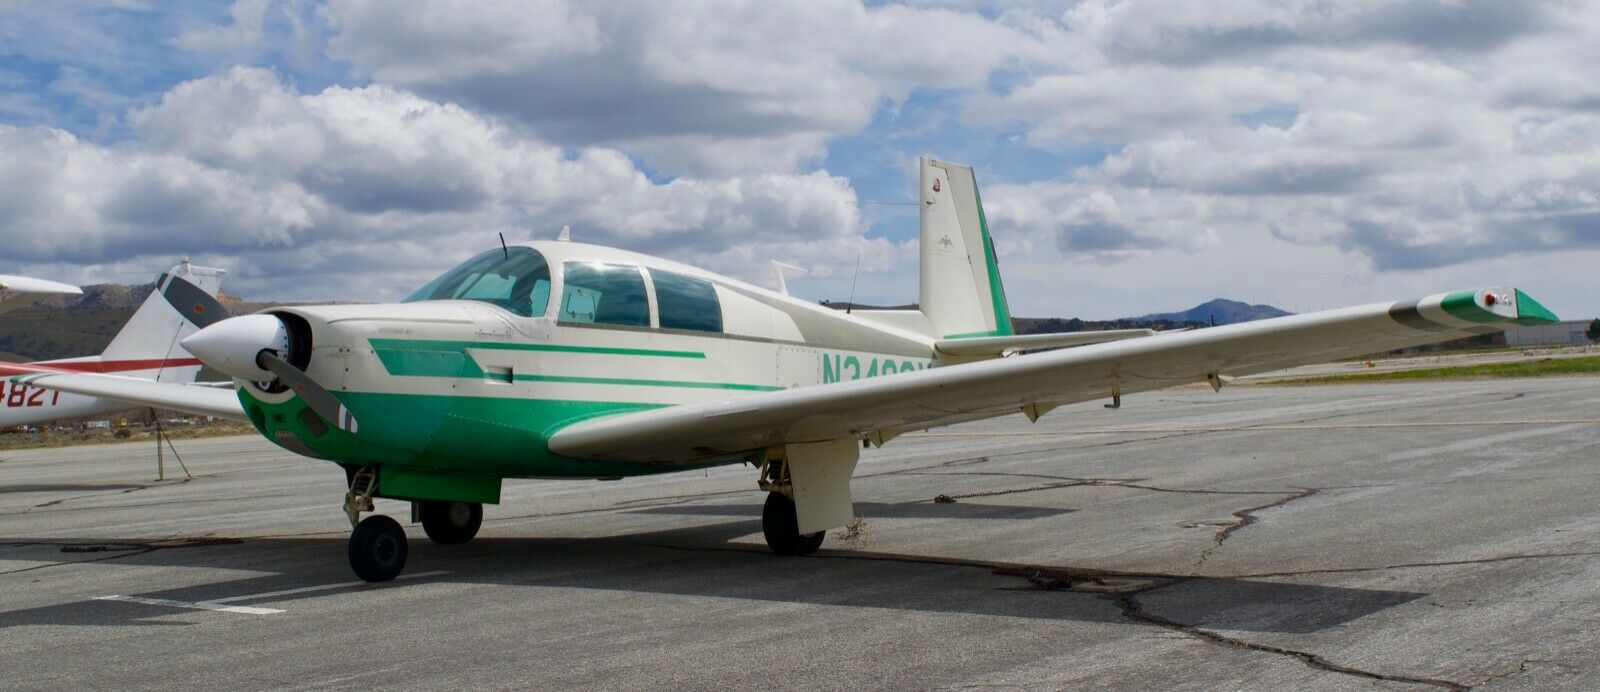 very nice 1966 Mooney M20E aircraft for sale